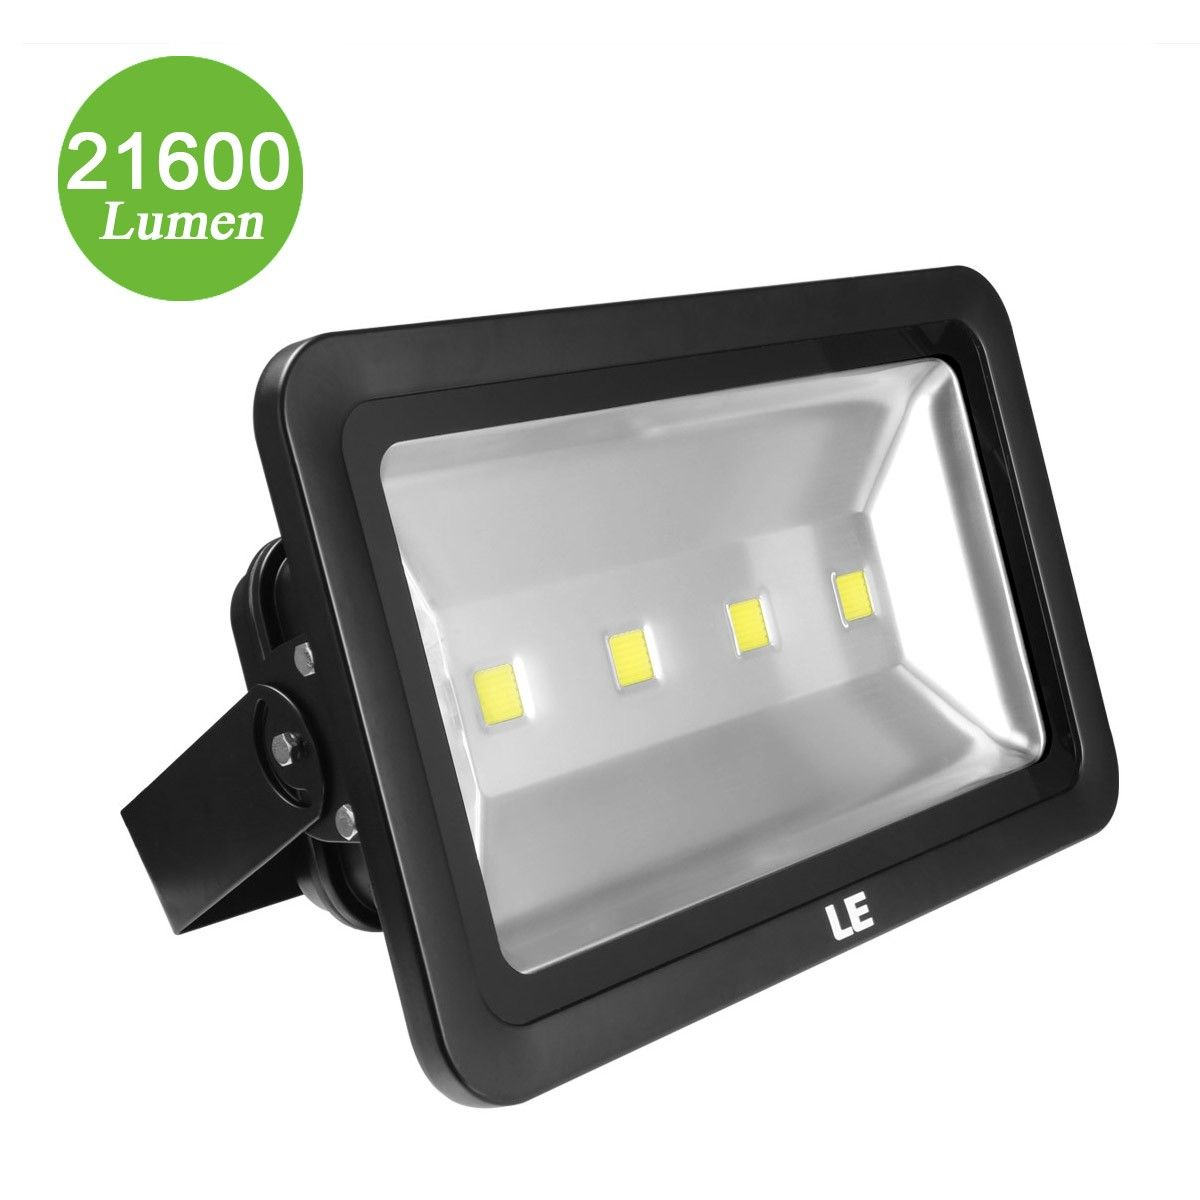 Led Outdoor Flood Light Bulbs Magnificent High Power 200W Outdoor Security Led Flood Lights 600W Hps Review